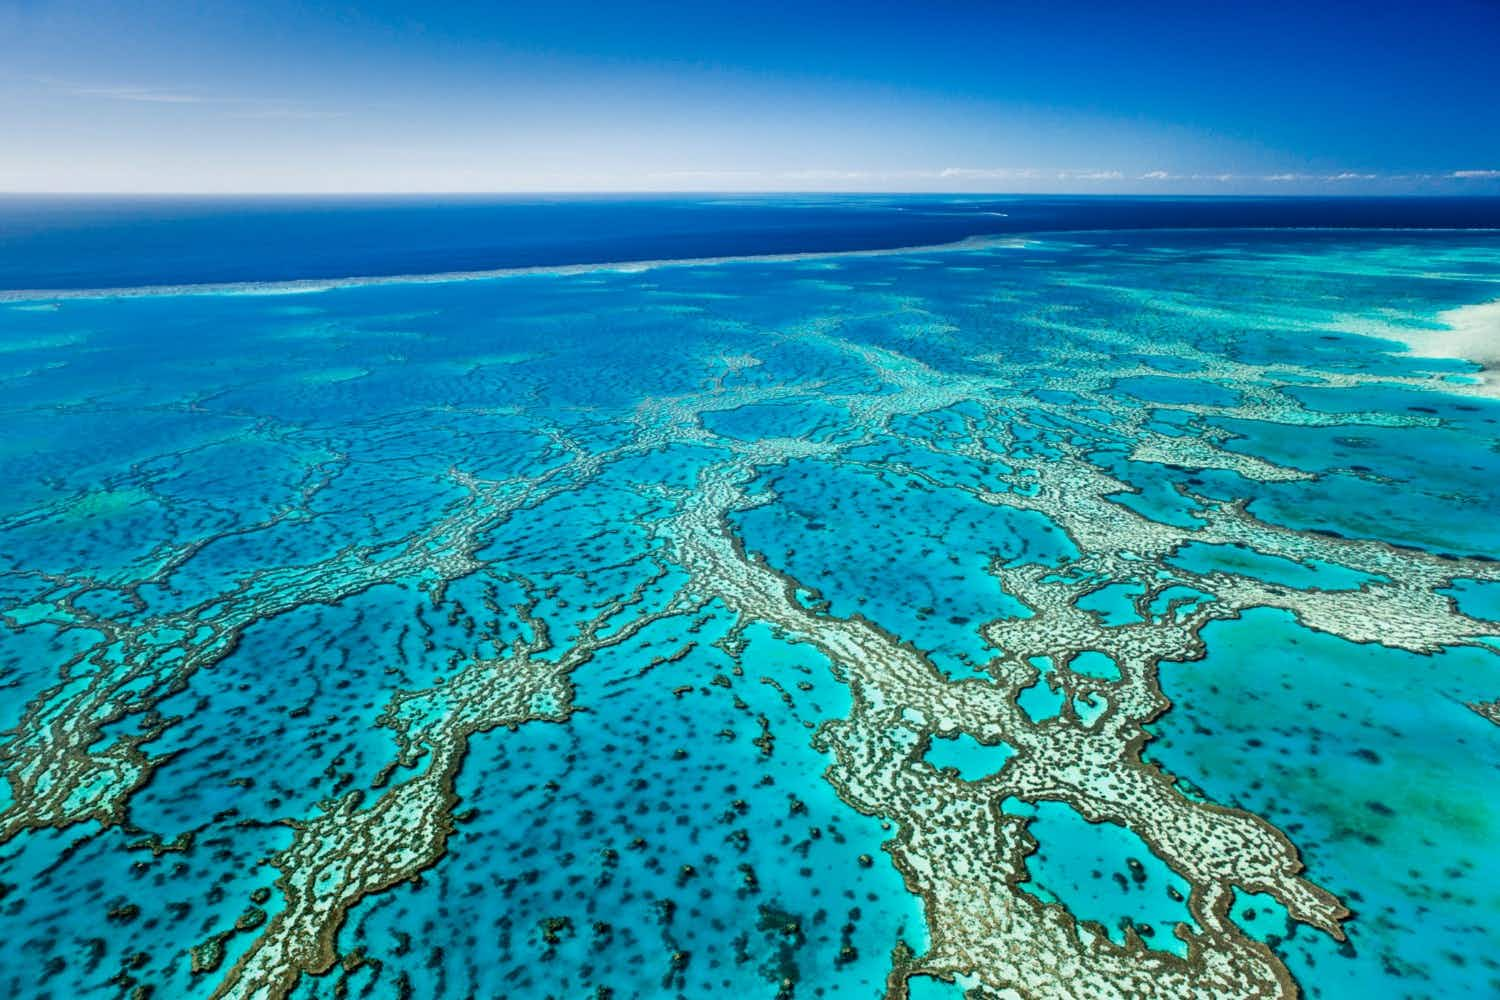 This ambitious new project may help to save Australia's Great Barrier Reef